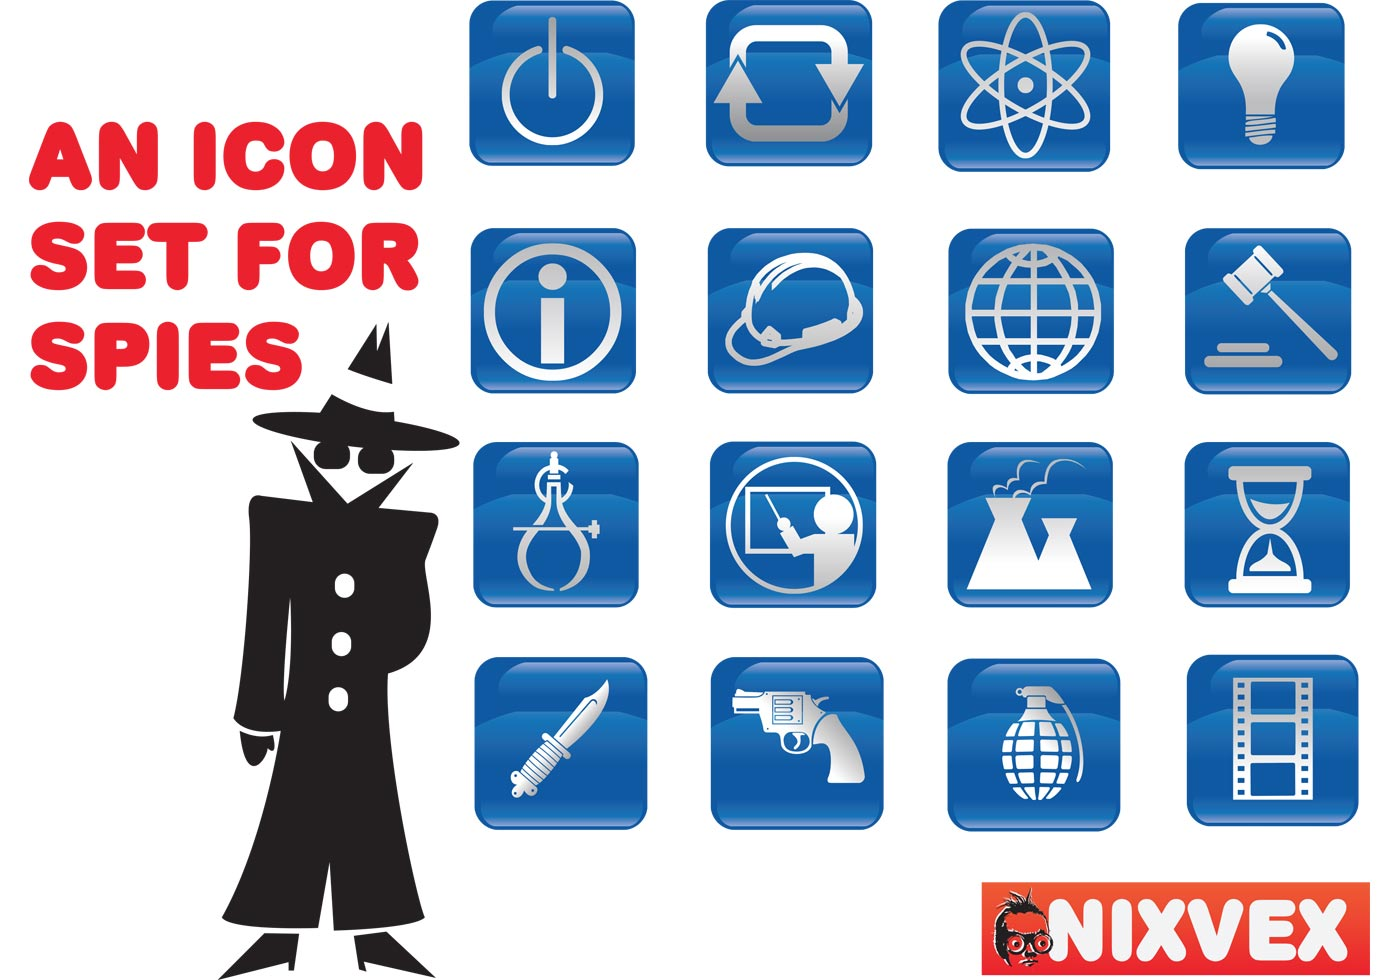 NixVex Icons for Spies Free Vectors